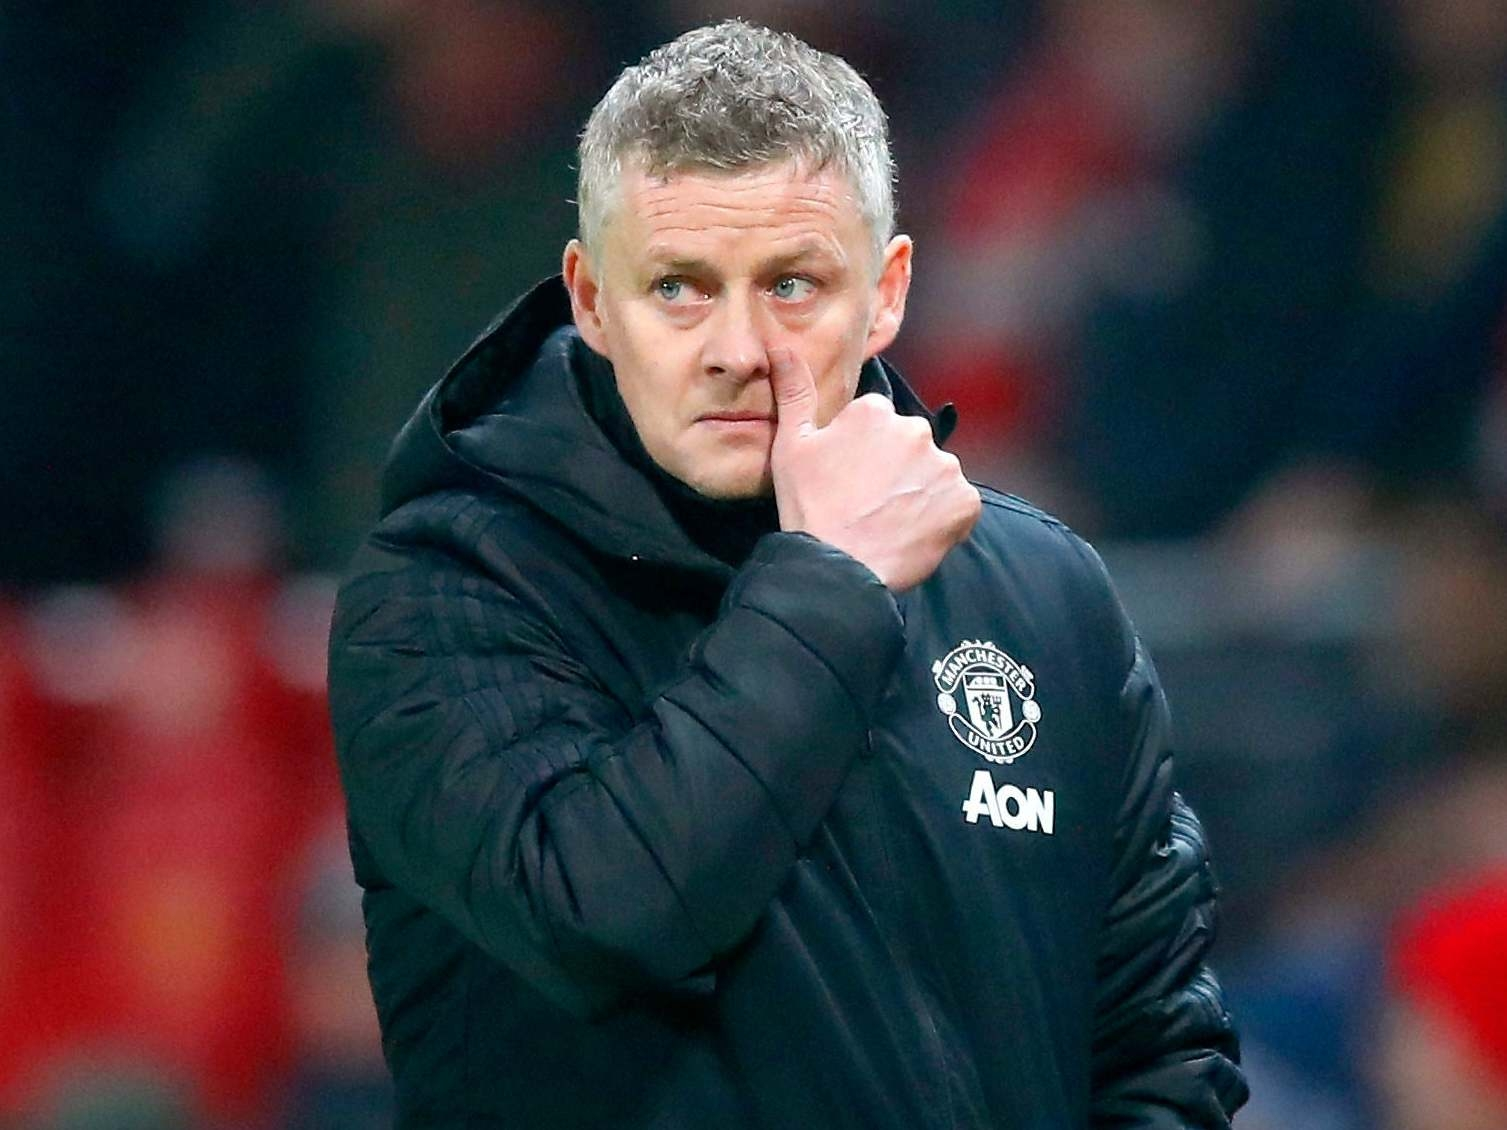 manchester united 2 2 southampton norwich city chelsea preview